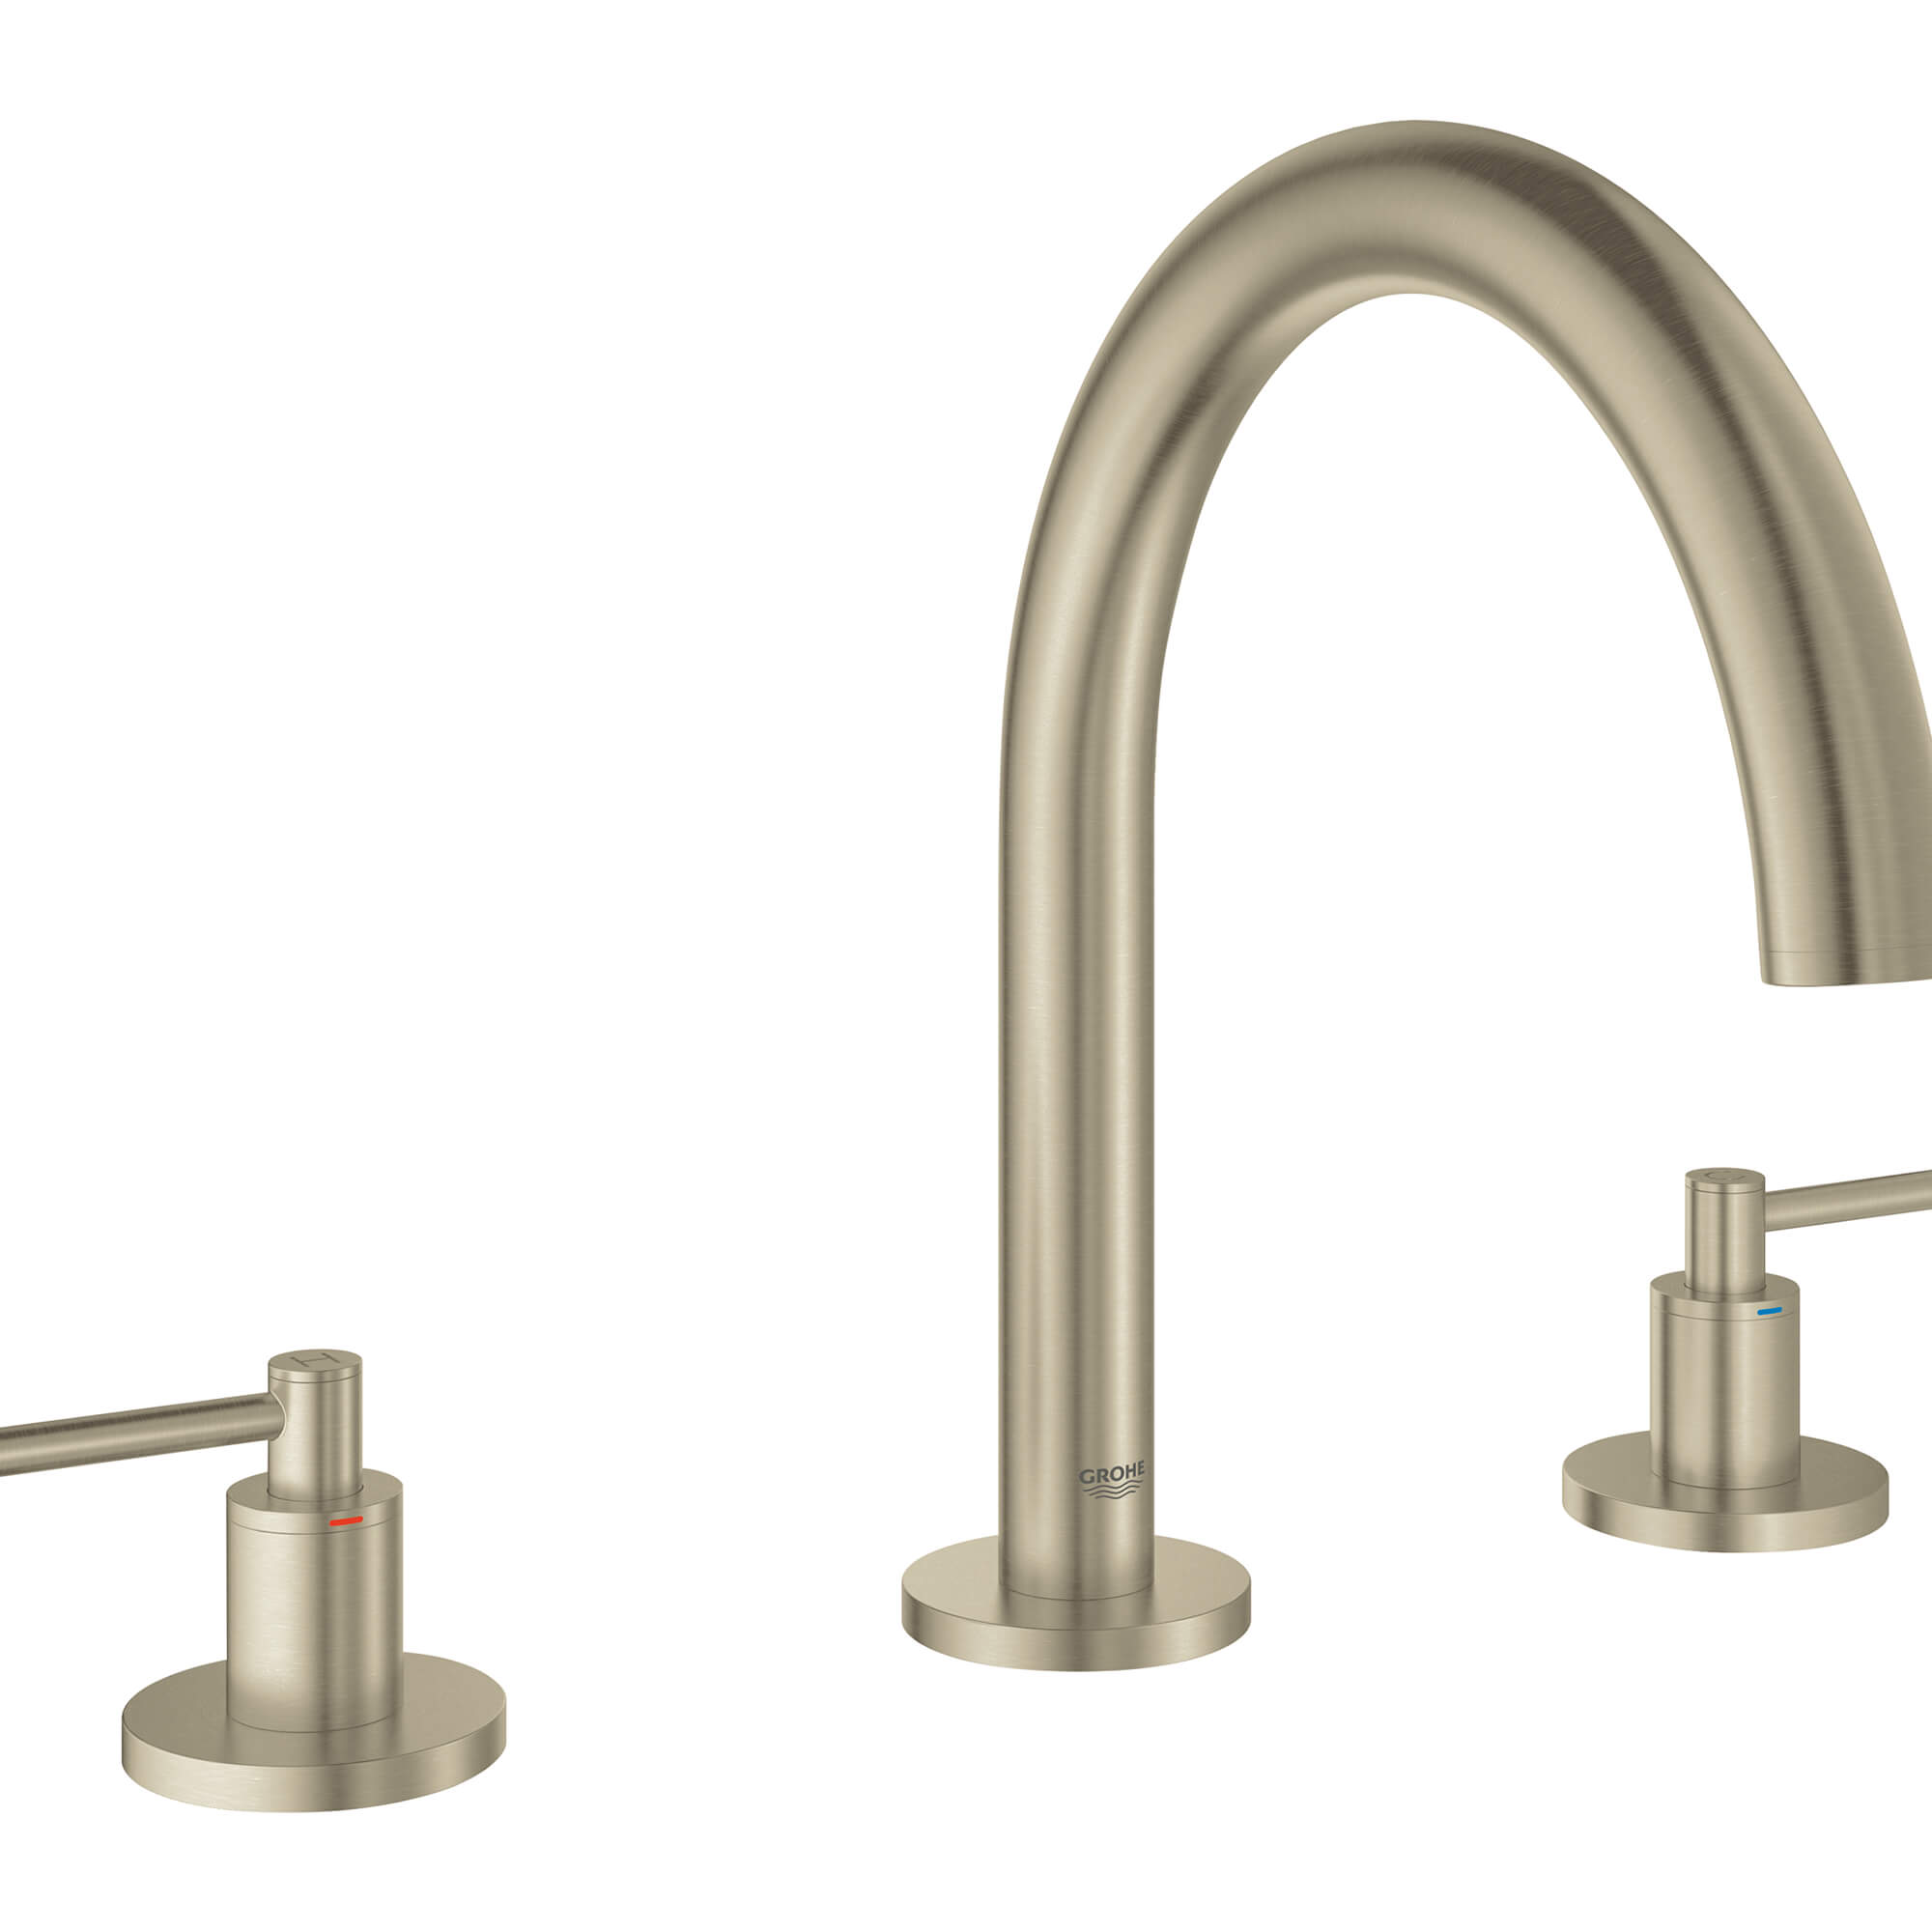 ATRIO Lever Handle Bath GROHE BRUSHED NICKEL